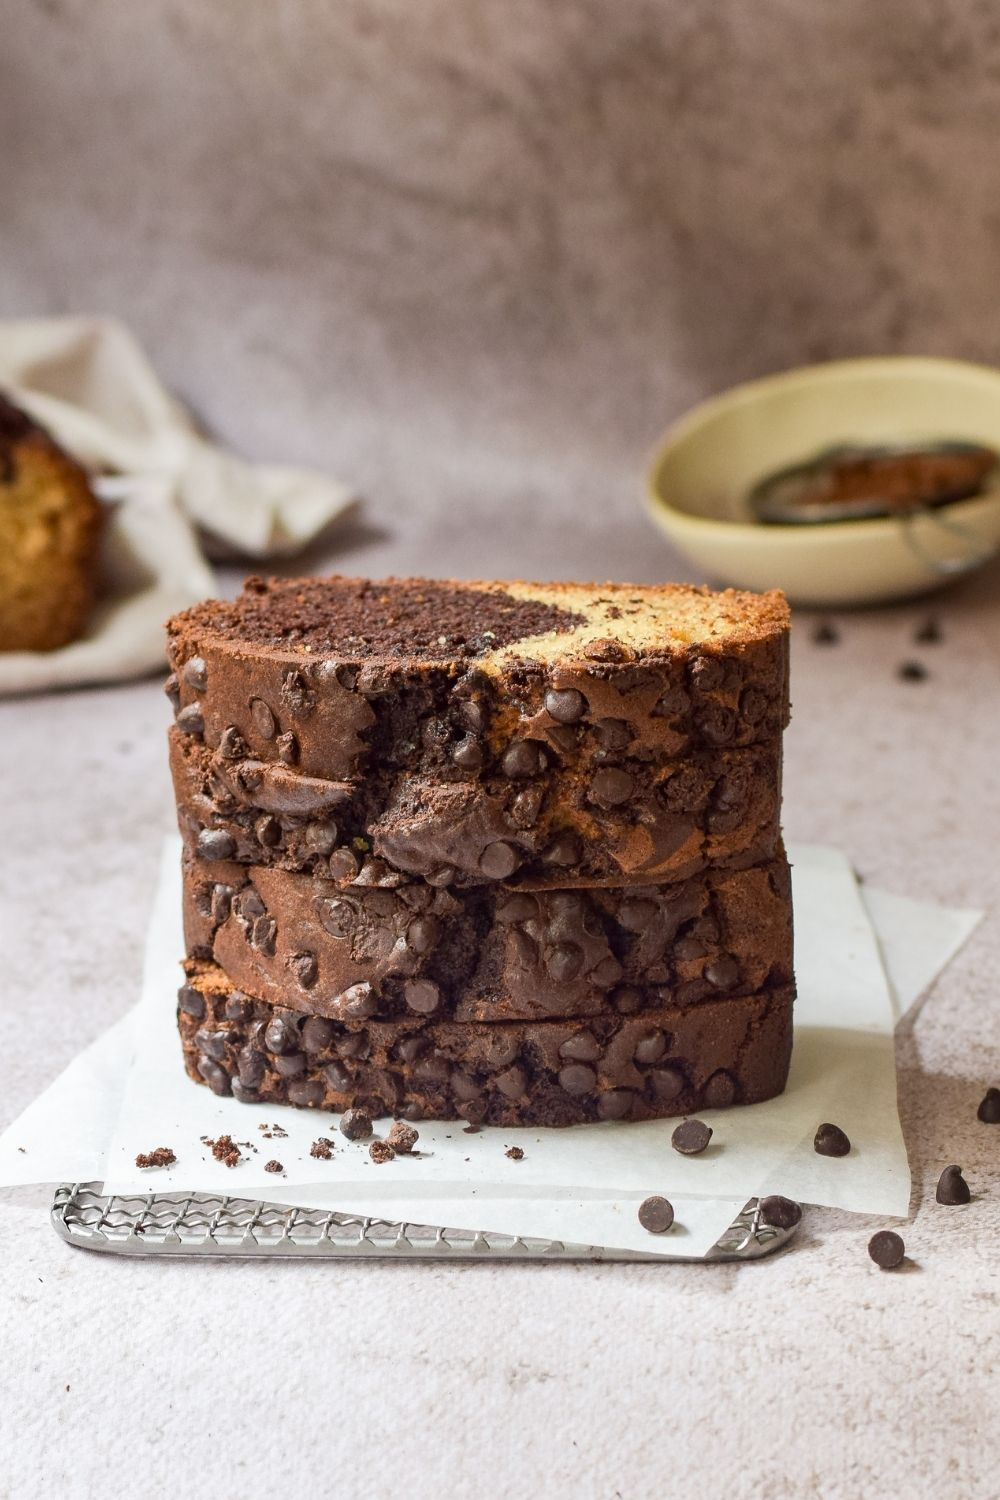 Slices of Chocolate Banana Bread stacked on top of each other